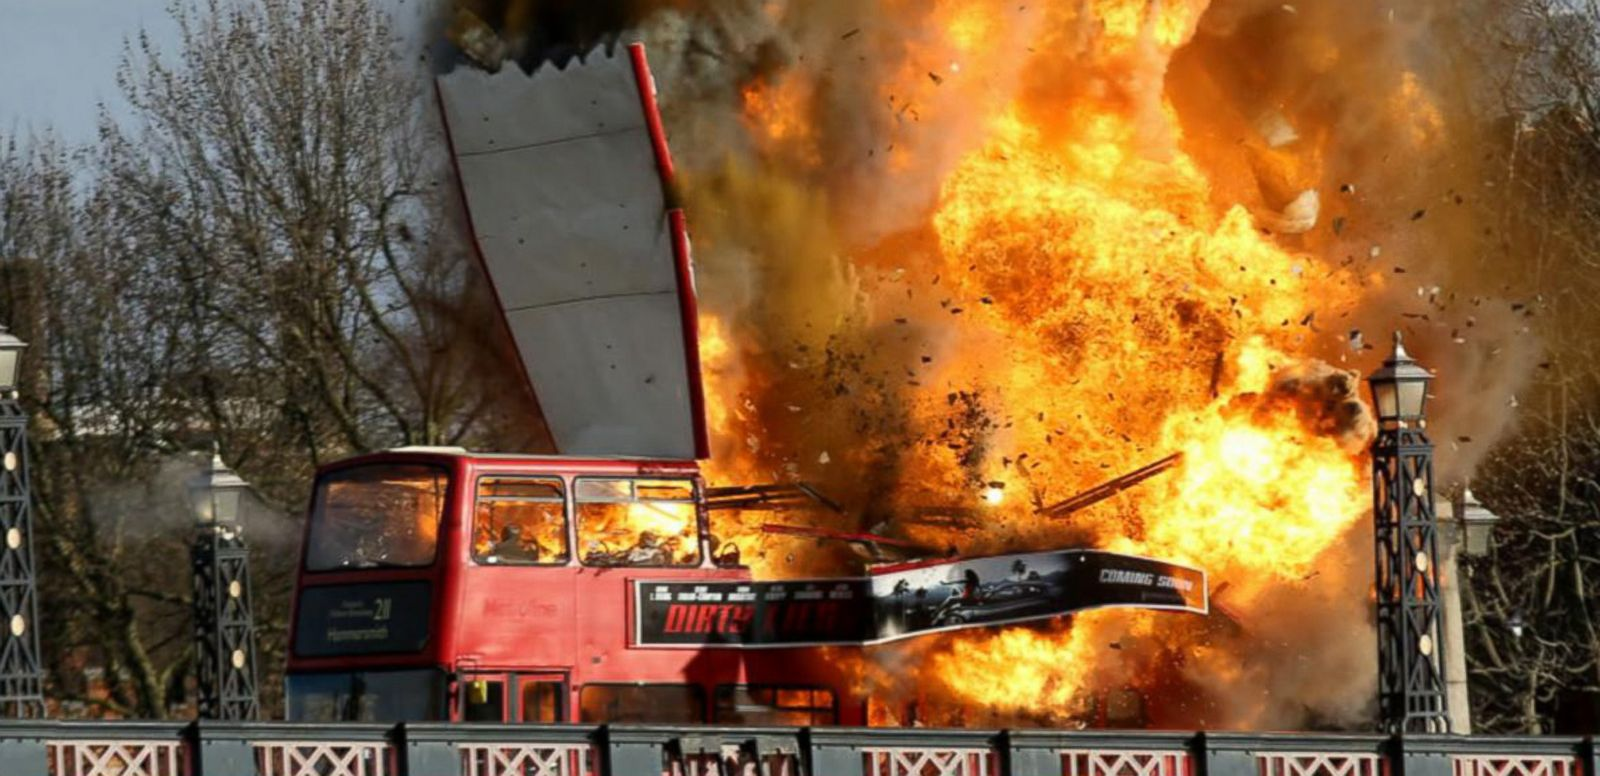 VIDEO: Double Decker Bus Explosion in London Part of Film Shoot, Scares Locals